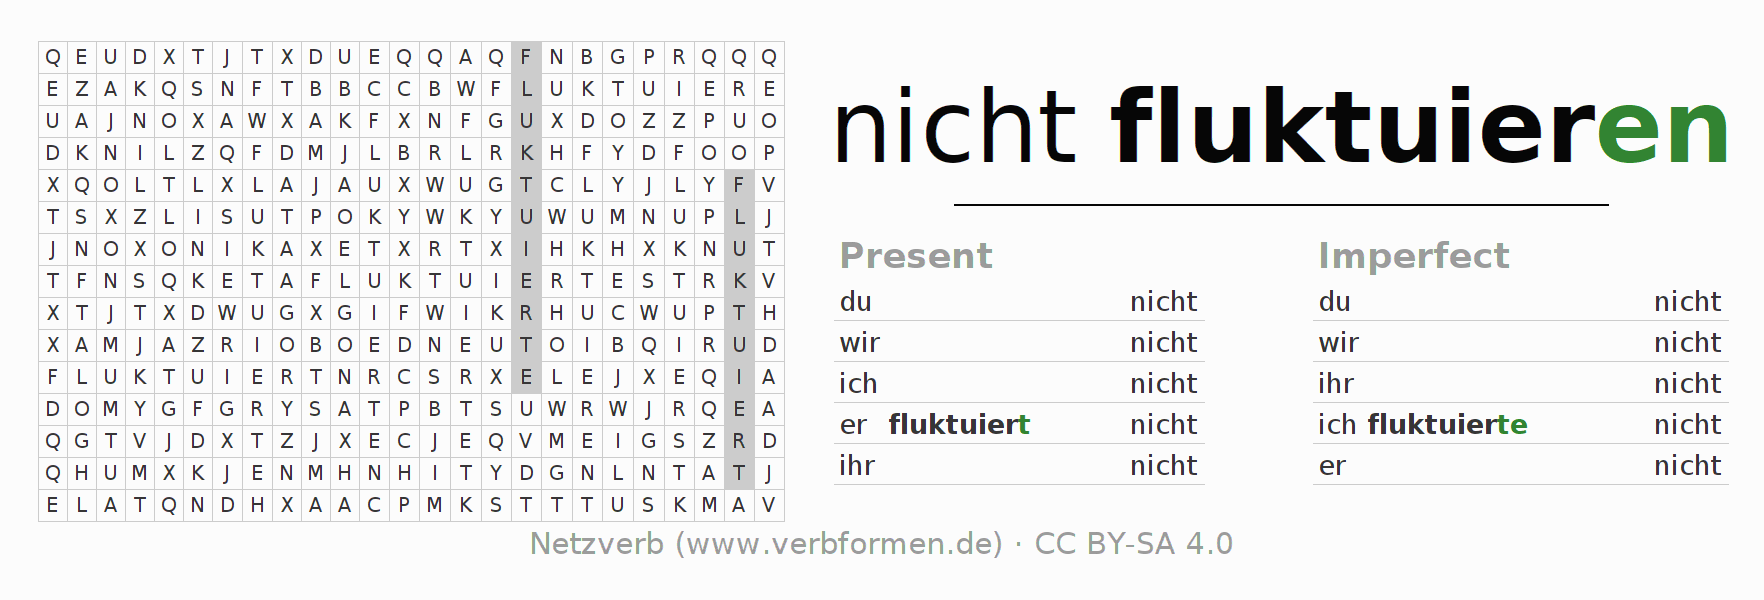 Word search puzzle for the conjugation of the verb nicht fluktuieren